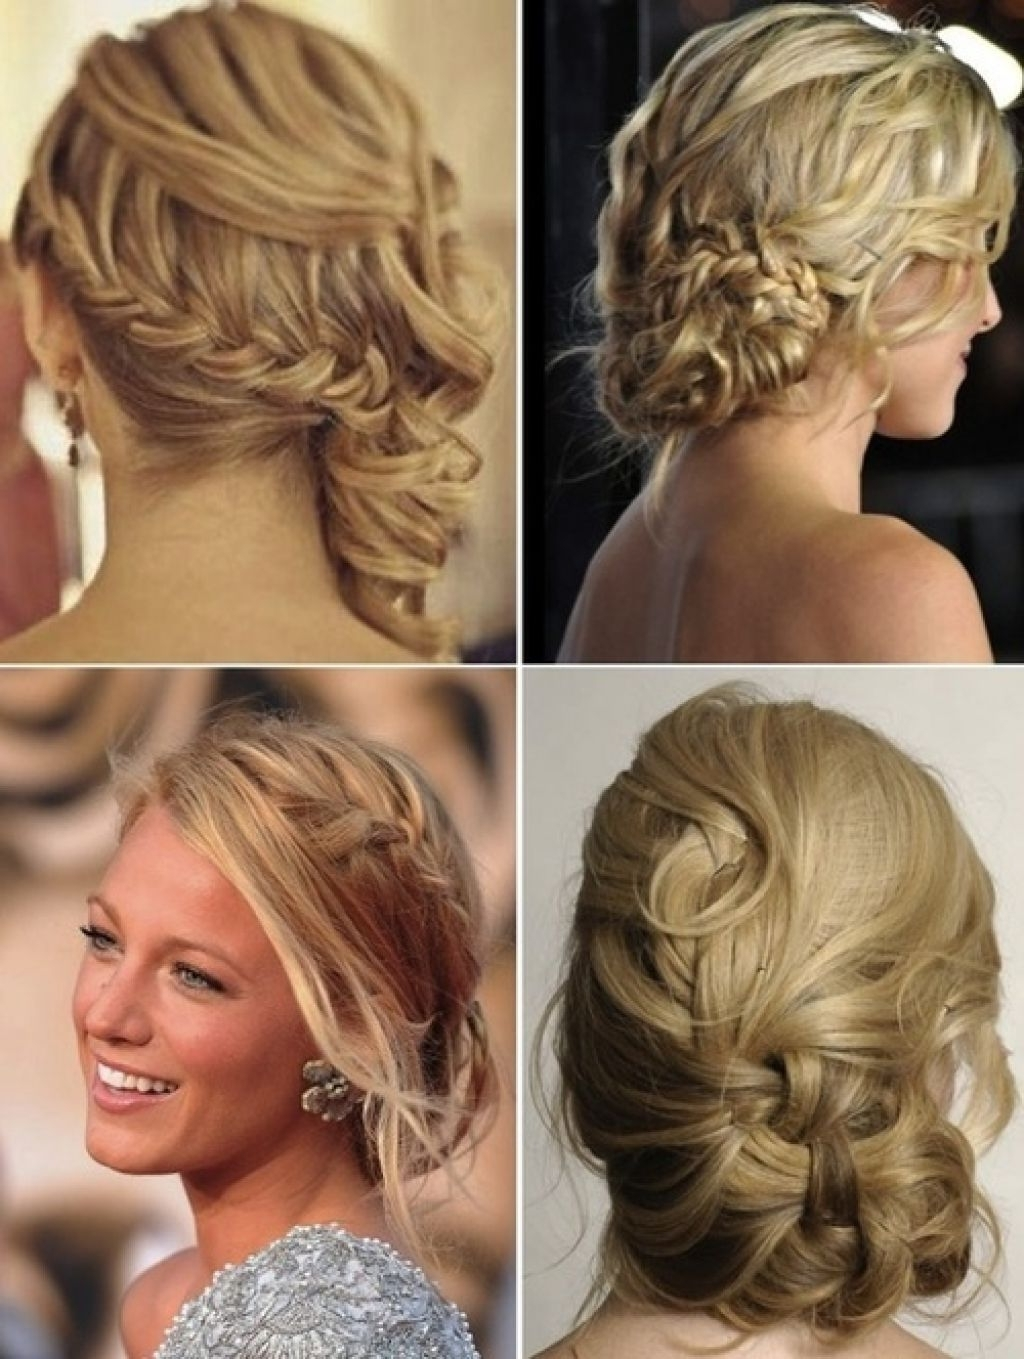 Trendy Simple Wedding Hairstyles For Long Hair Thick With Regard To Casual Wedding Hairstyles For Long Hair – Hairstyle For Women & Man (View 15 of 15)